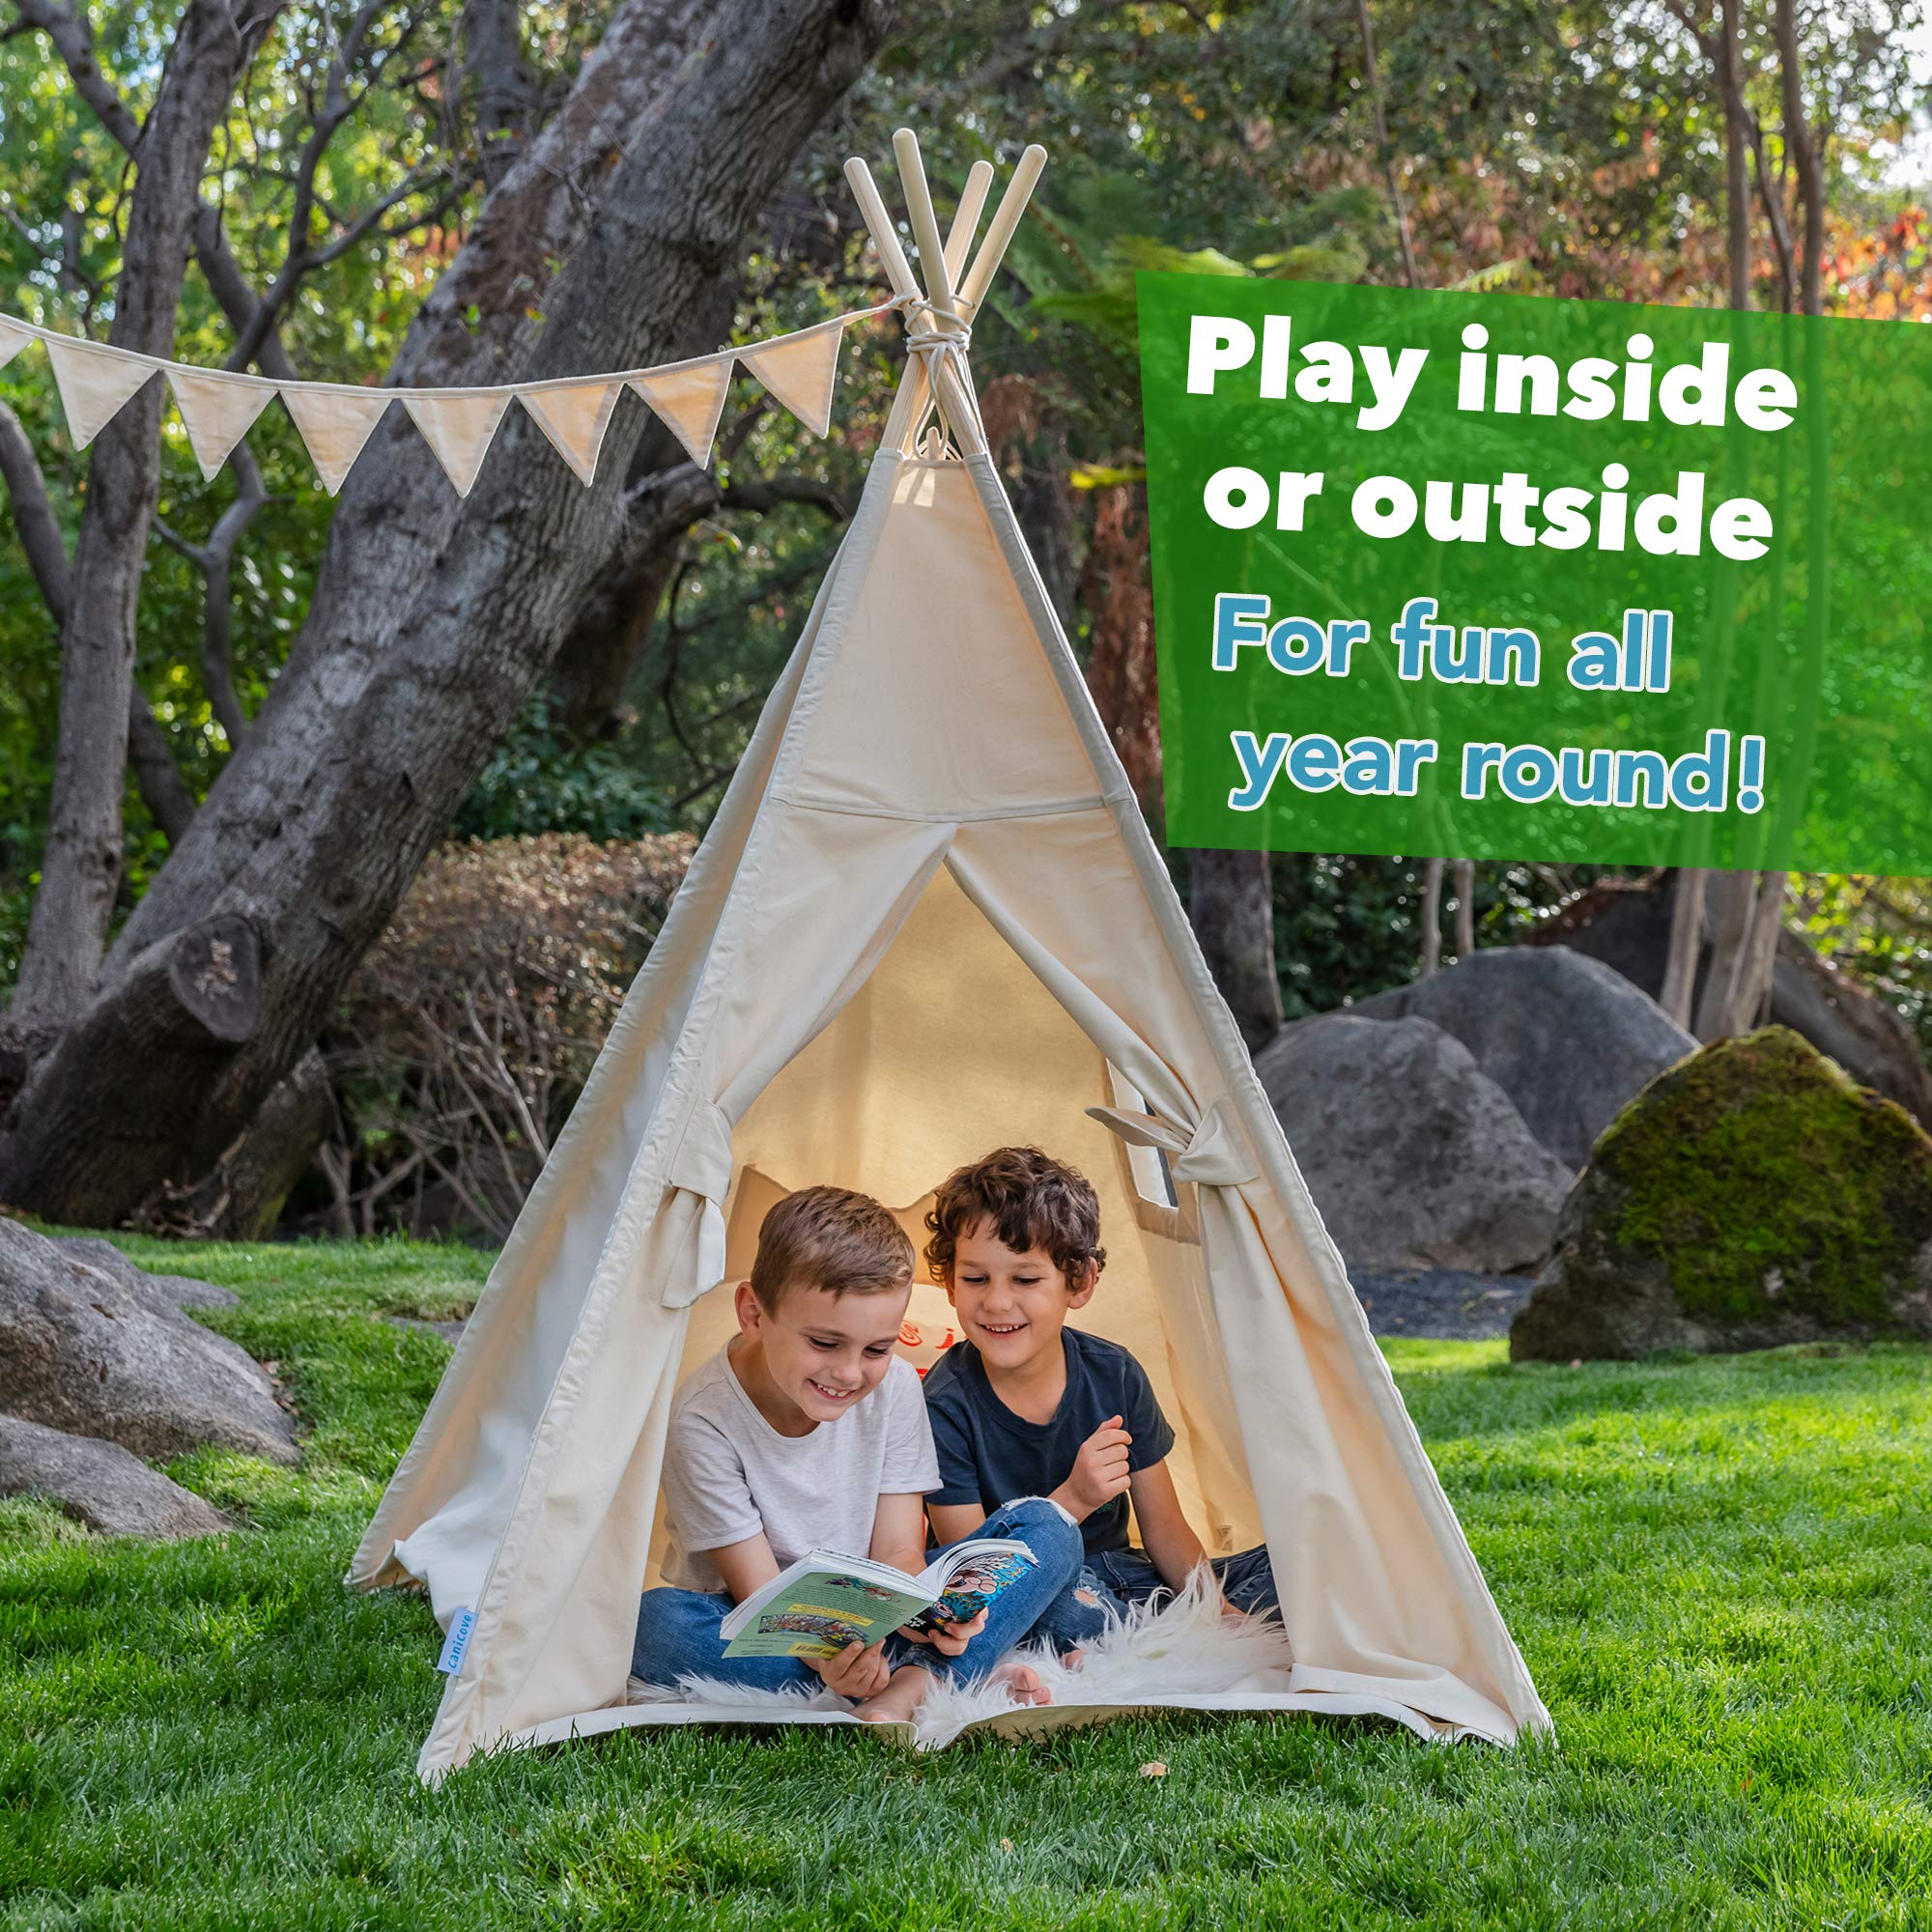 Canicove Teepee Tent for Kids - Award Winning 100% Cotton Play Tent - Large Indoor/Outdoor Tipi for Boys & Girls + Free Fun Flags! by Canicove (Image #3)